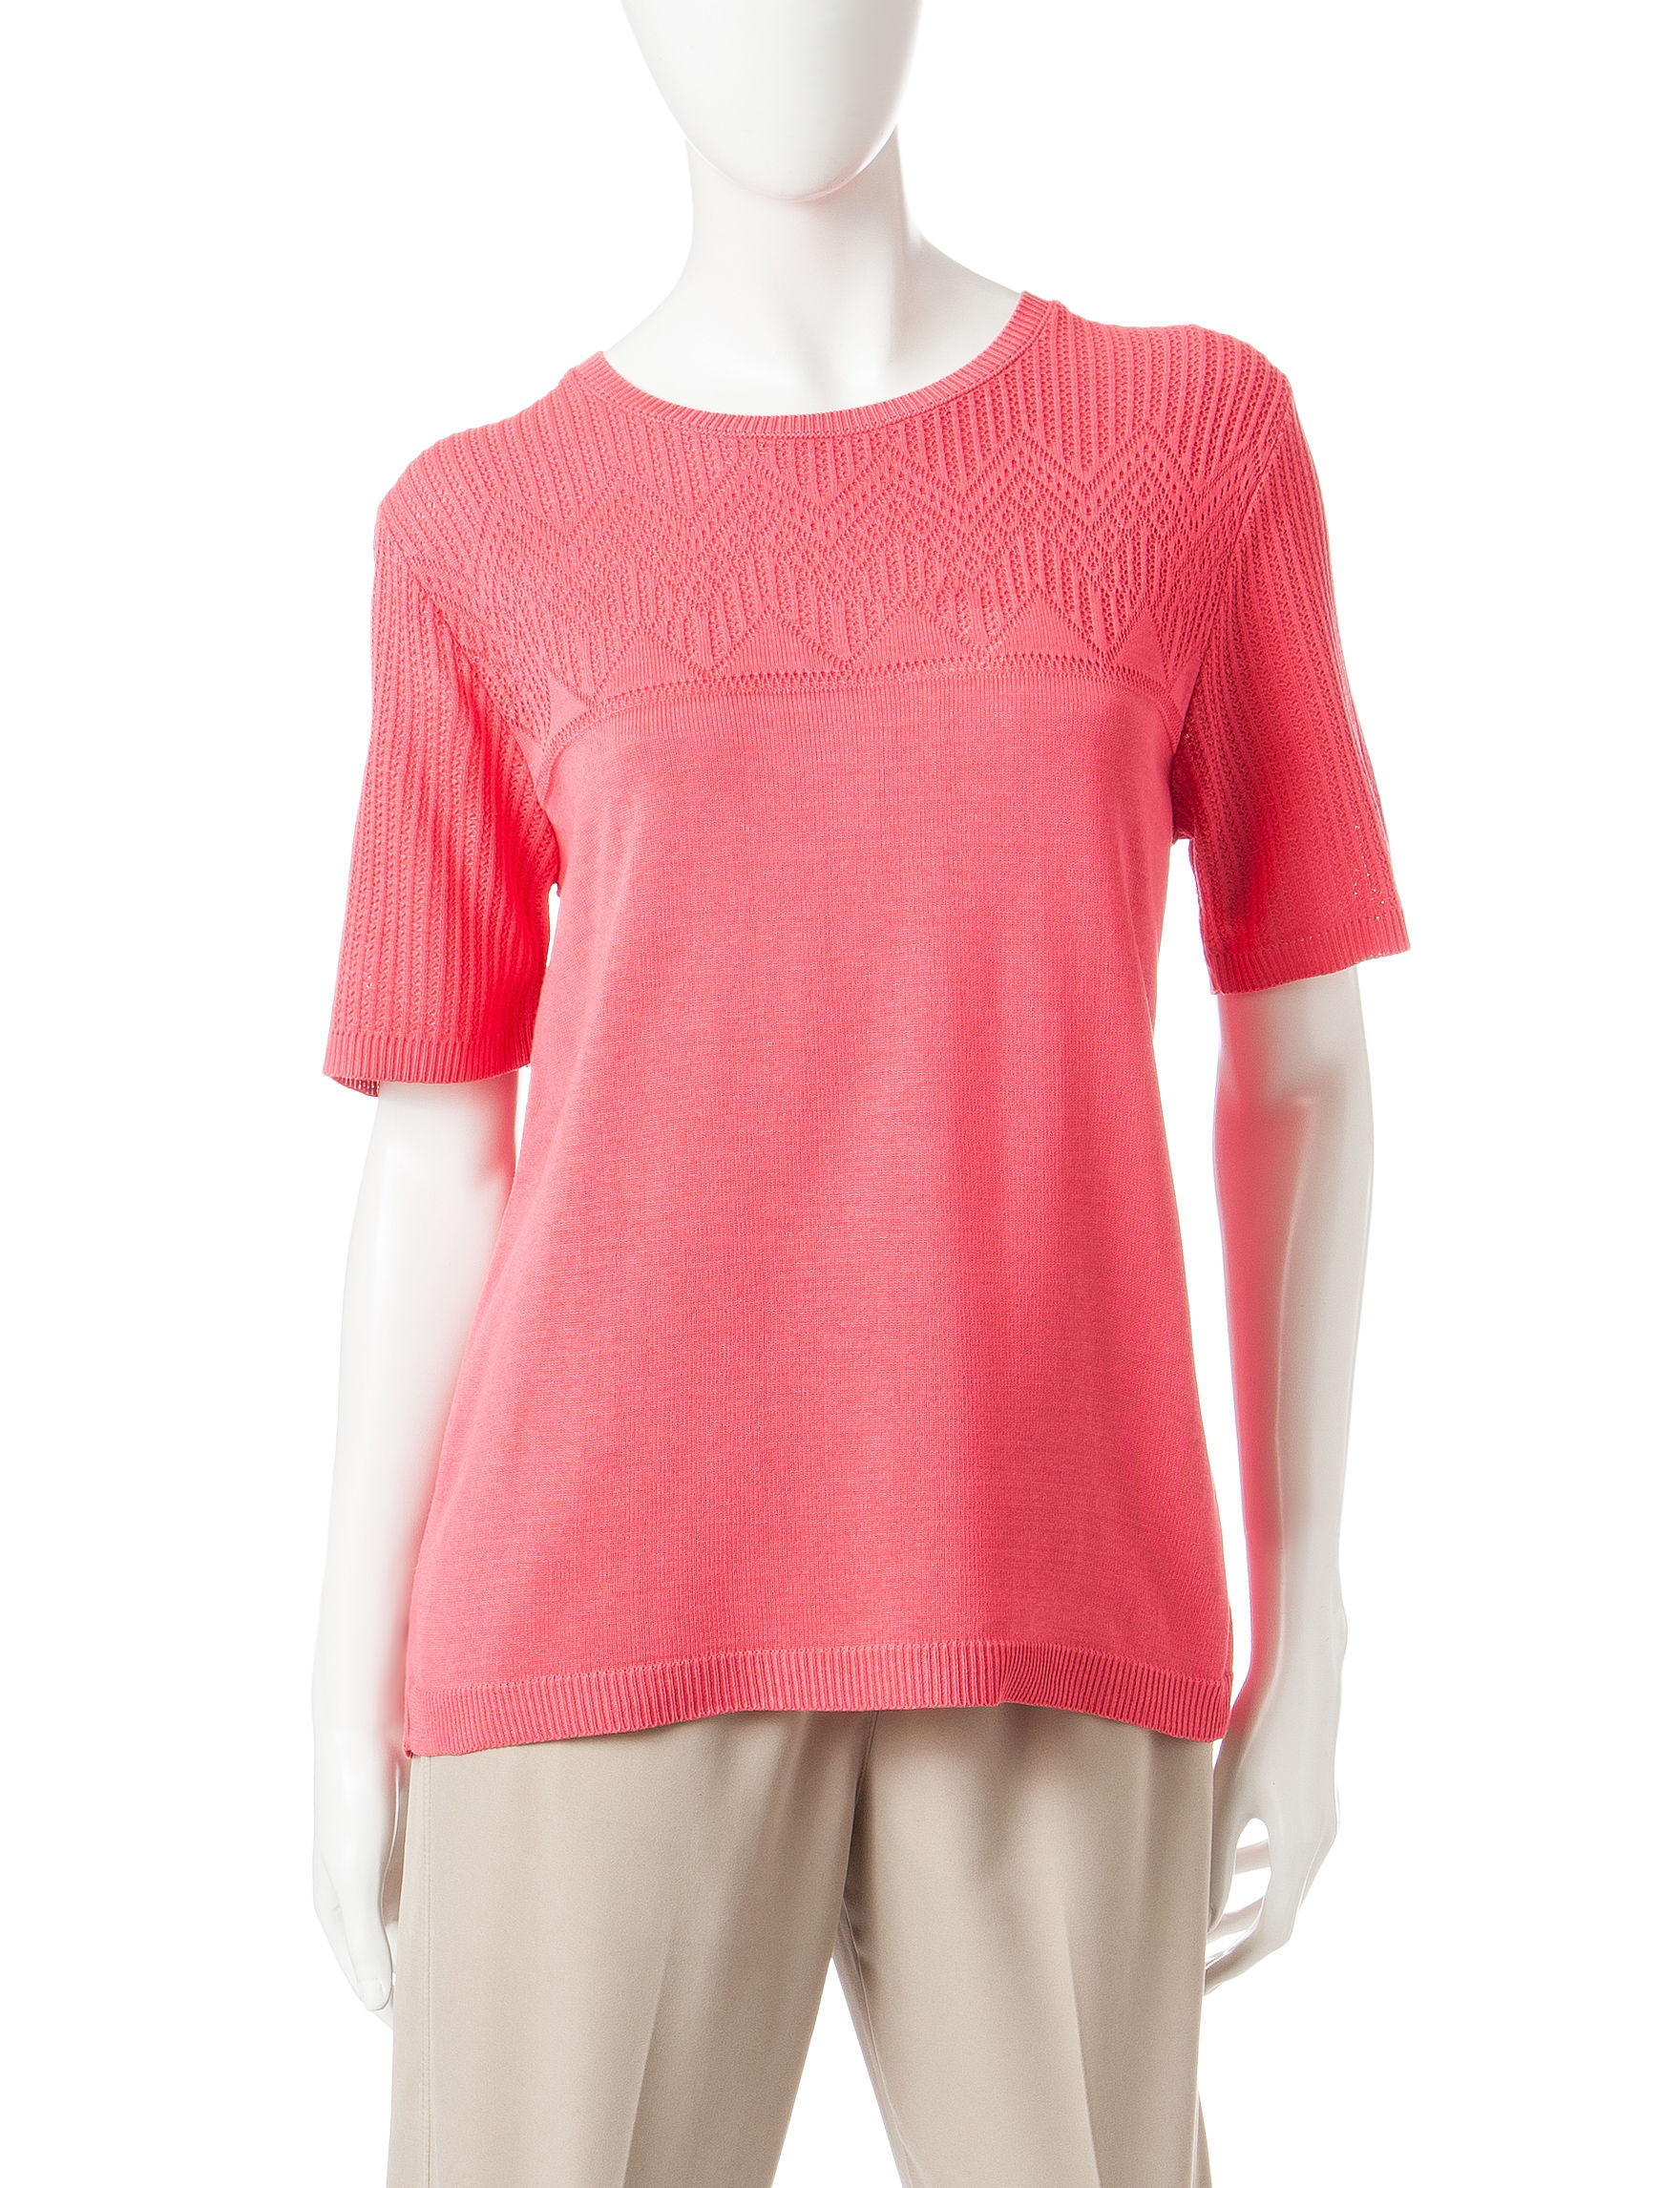 Alfred Dunner Pink Pull-overs Shirts & Blouses